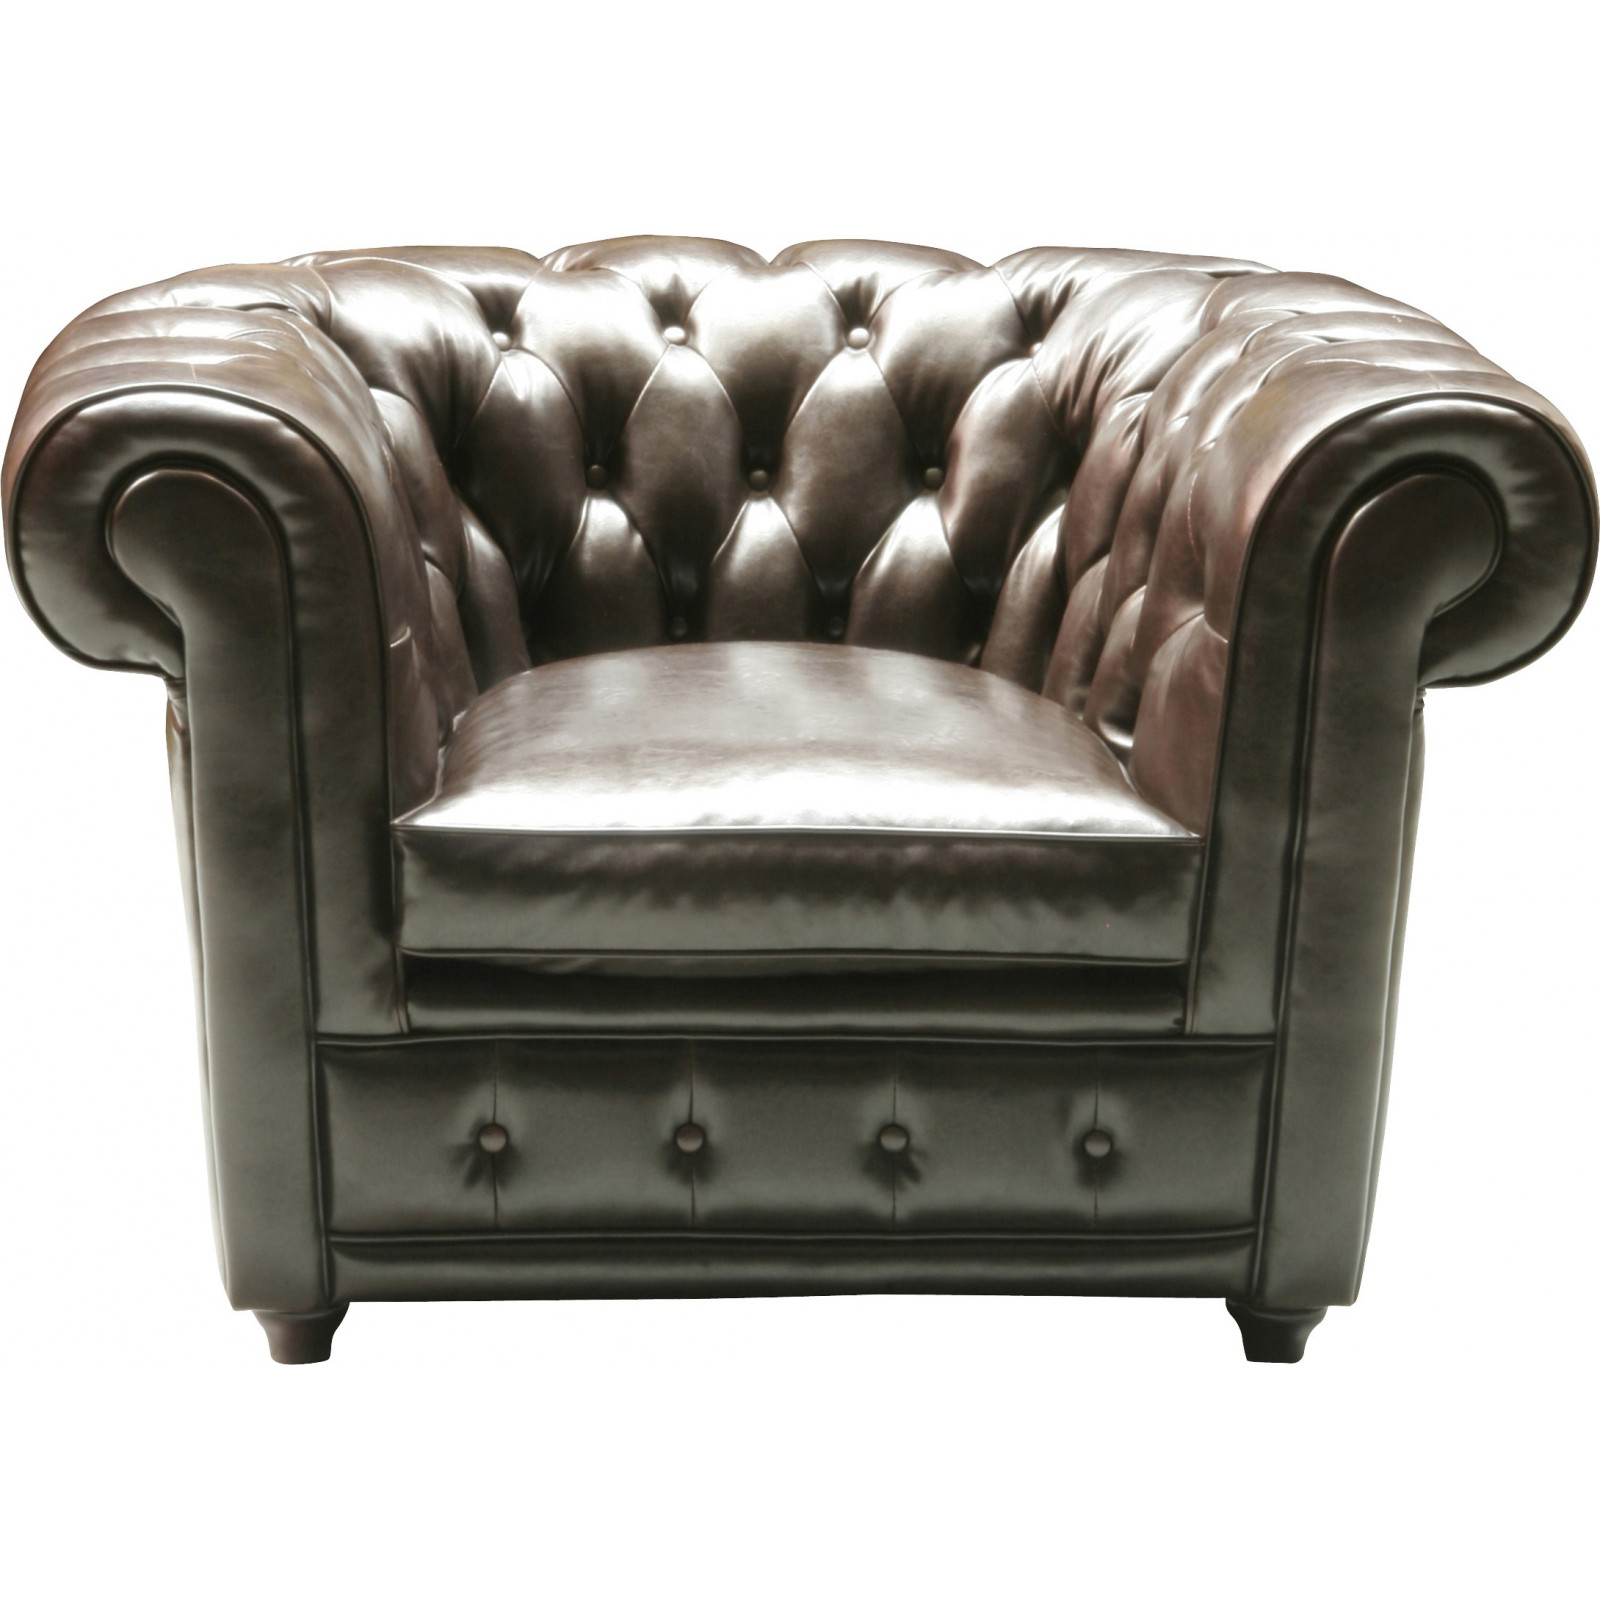 fauteuil chesterfield vintage en cuir brun fonce oxford kare design. Black Bedroom Furniture Sets. Home Design Ideas